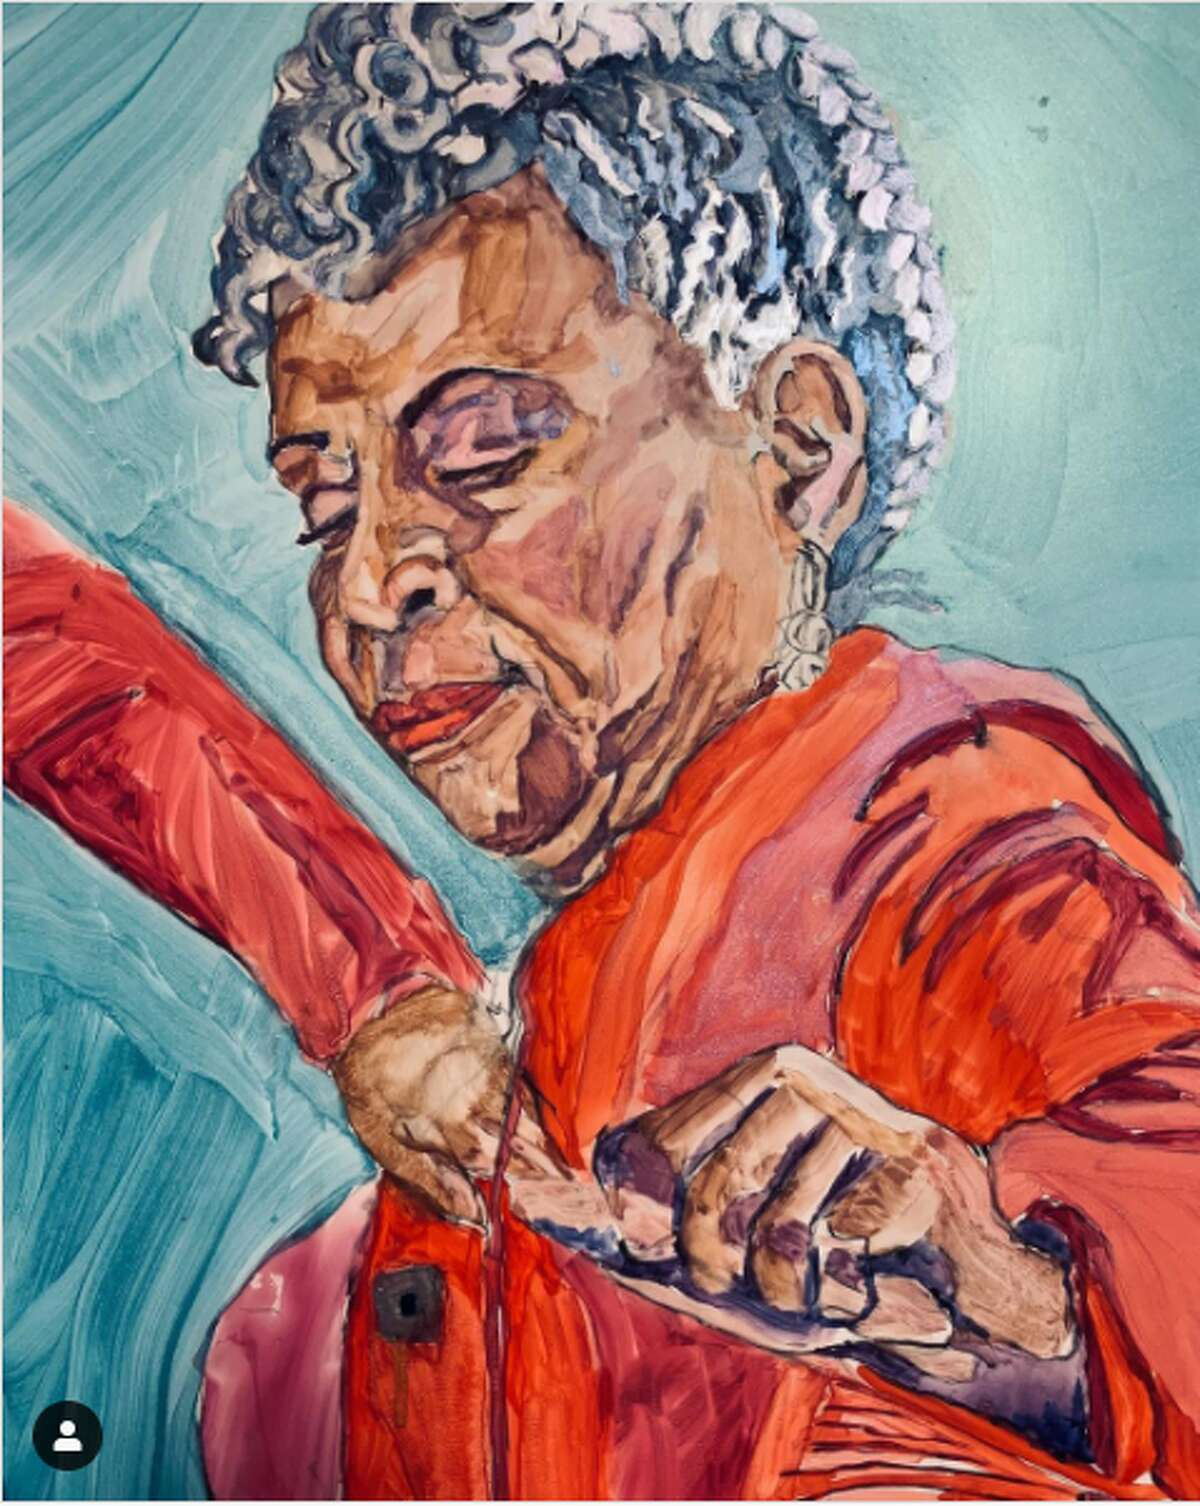 BARBARA FELIX @proximityartmedia From experimental art to exhibition-worthy pieces, Barbara Felix lets her followers see a wide array of her contemporary creativity come to life. The Afro-Latinx artist focuses on sensuality, gender, and relationships in her paintings.